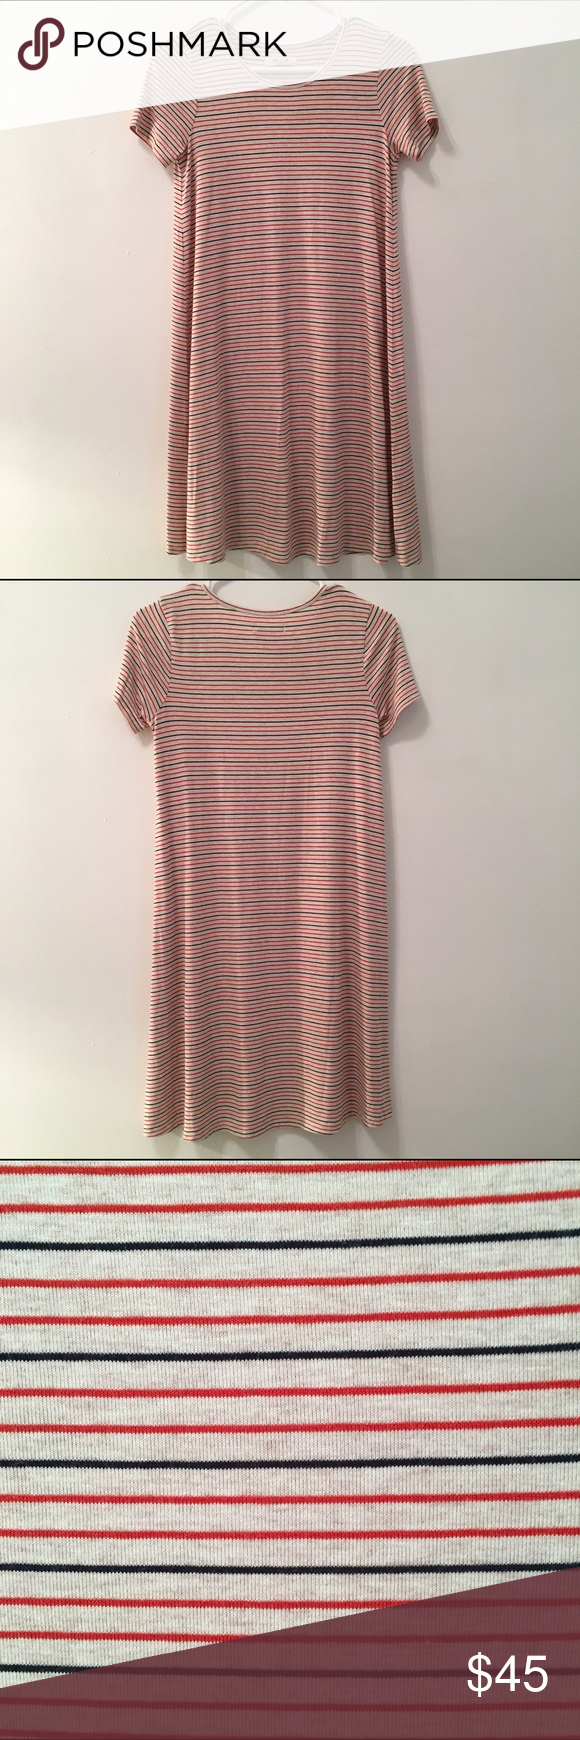 Madewell Swingy Tee Dress Madewell striped swingy tee dress in size XXS. Really soft and super flattering fit! Only.worn once. Madewell Dresses Mini